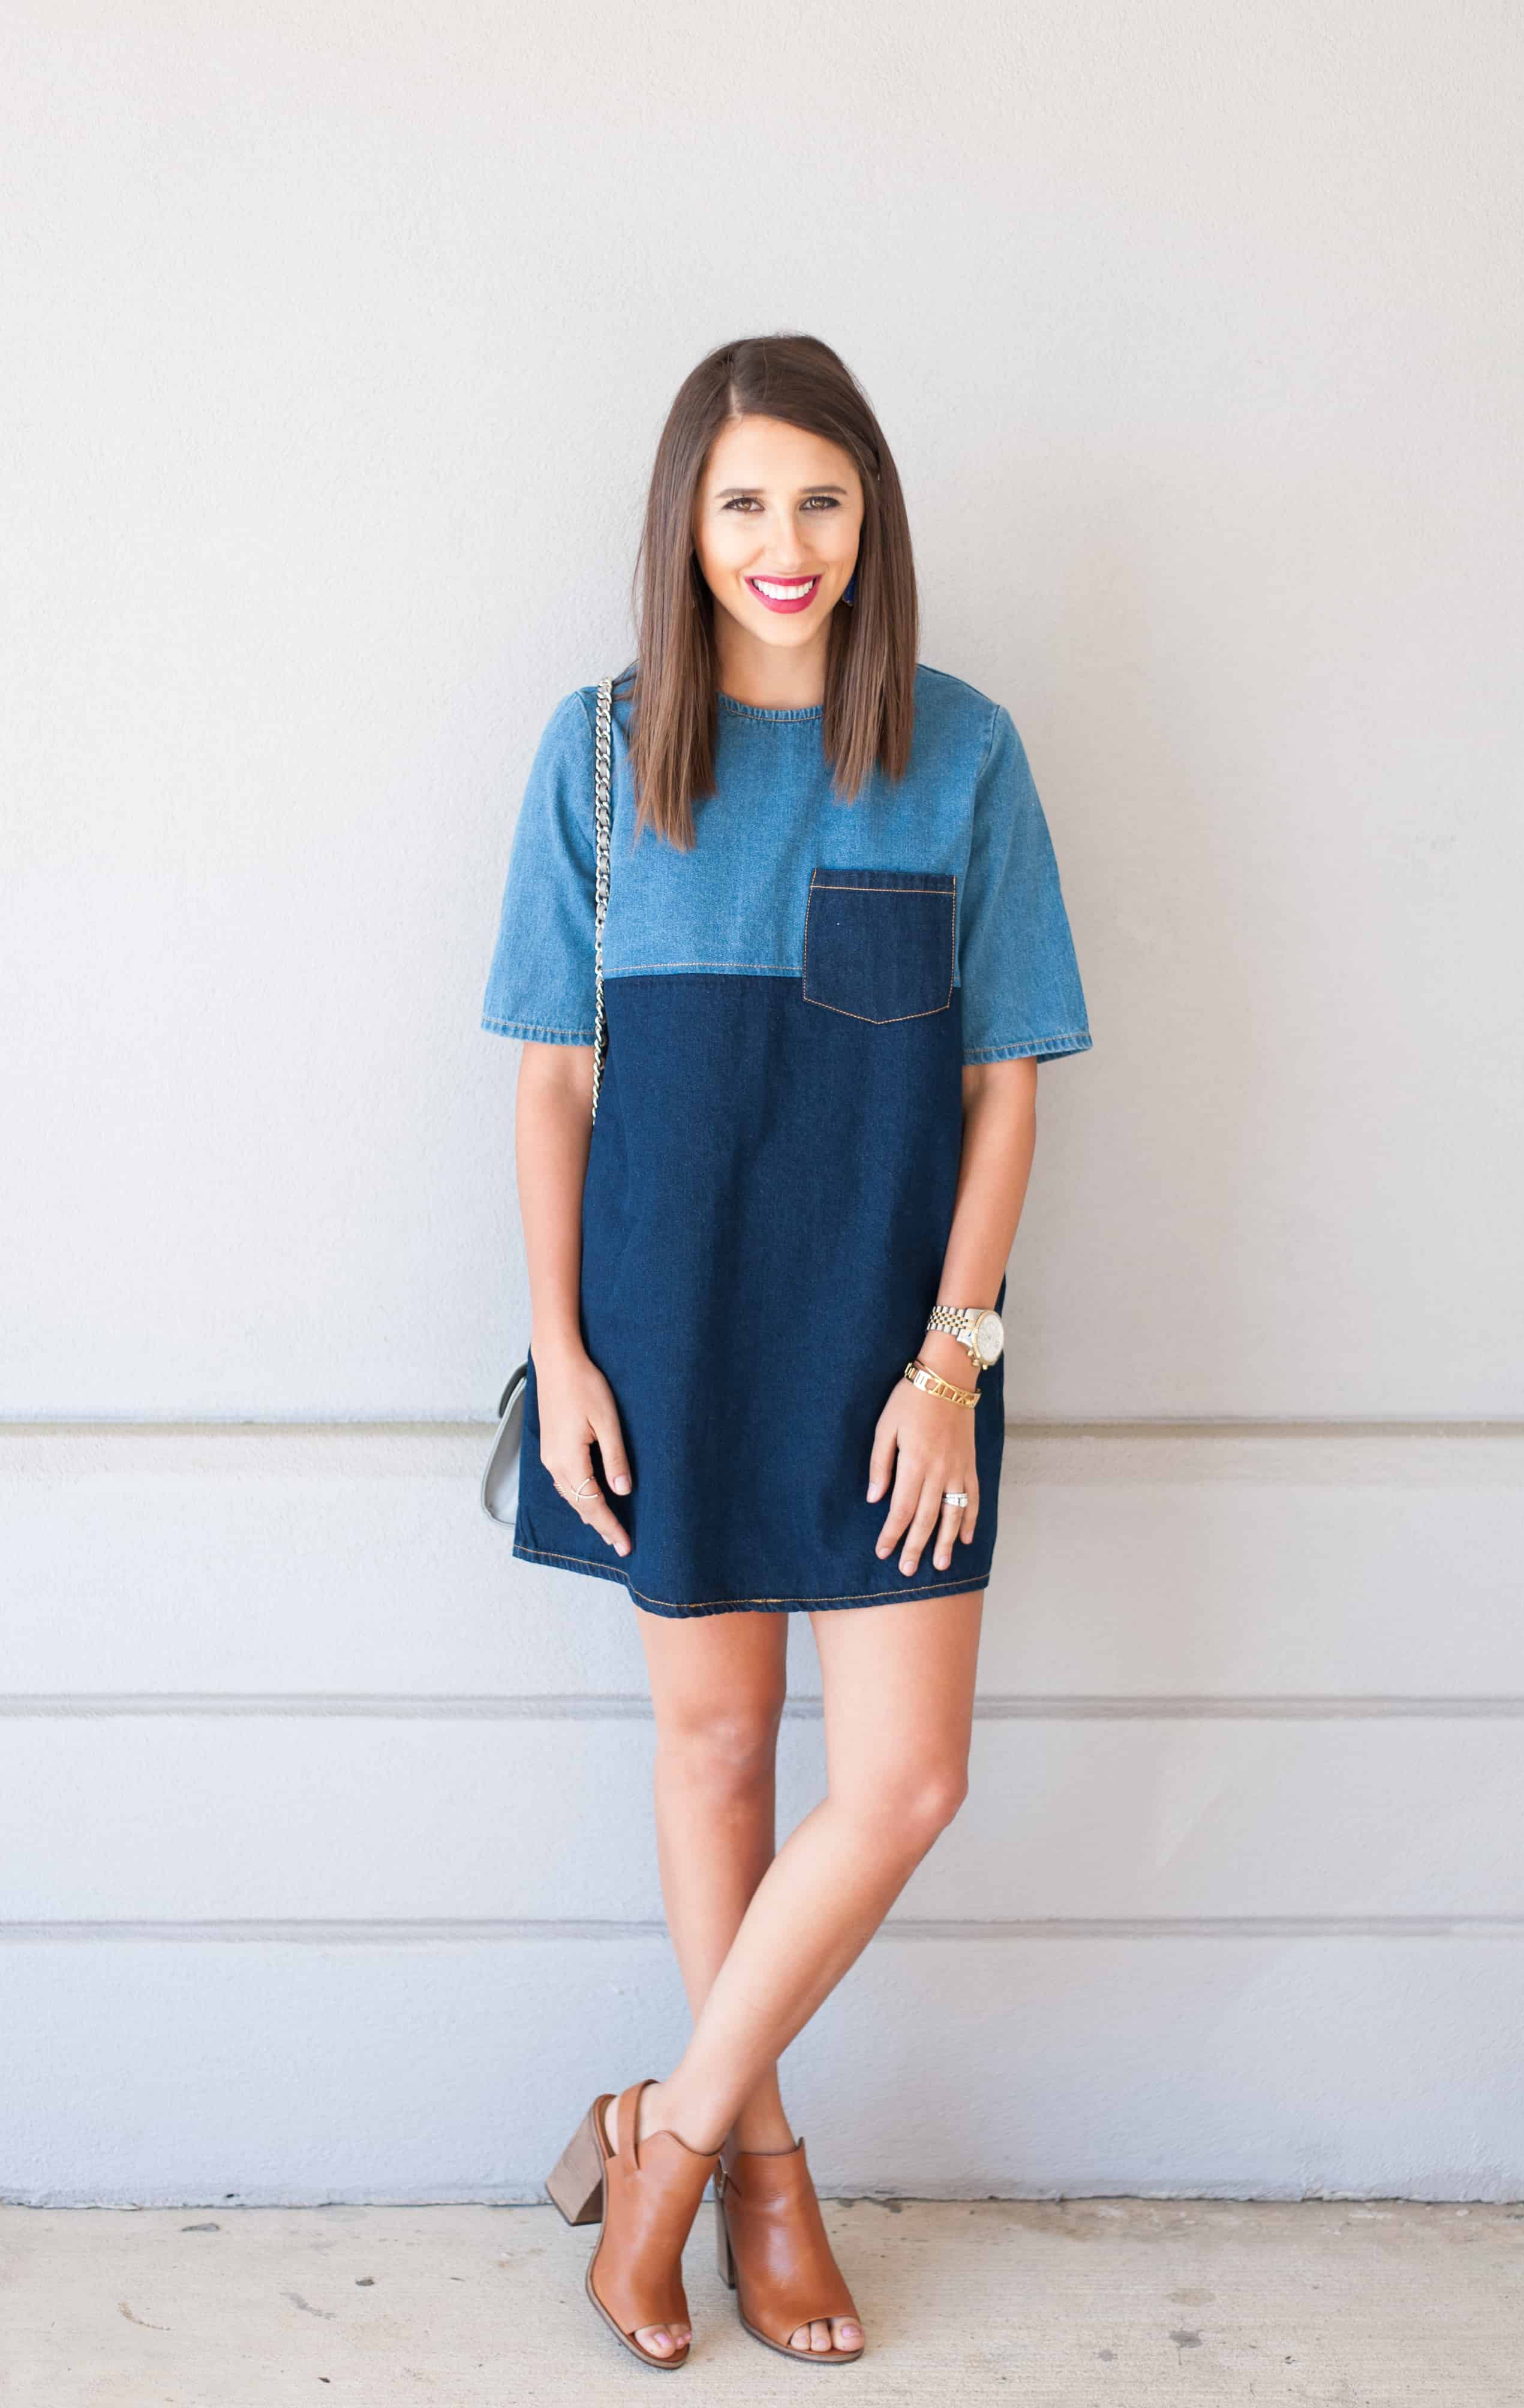 Dress Up Buttercup // A Houston-based fashion and inspiration blog developed to daily inspire your own personal style by Dede Raad | Colorblock Denim